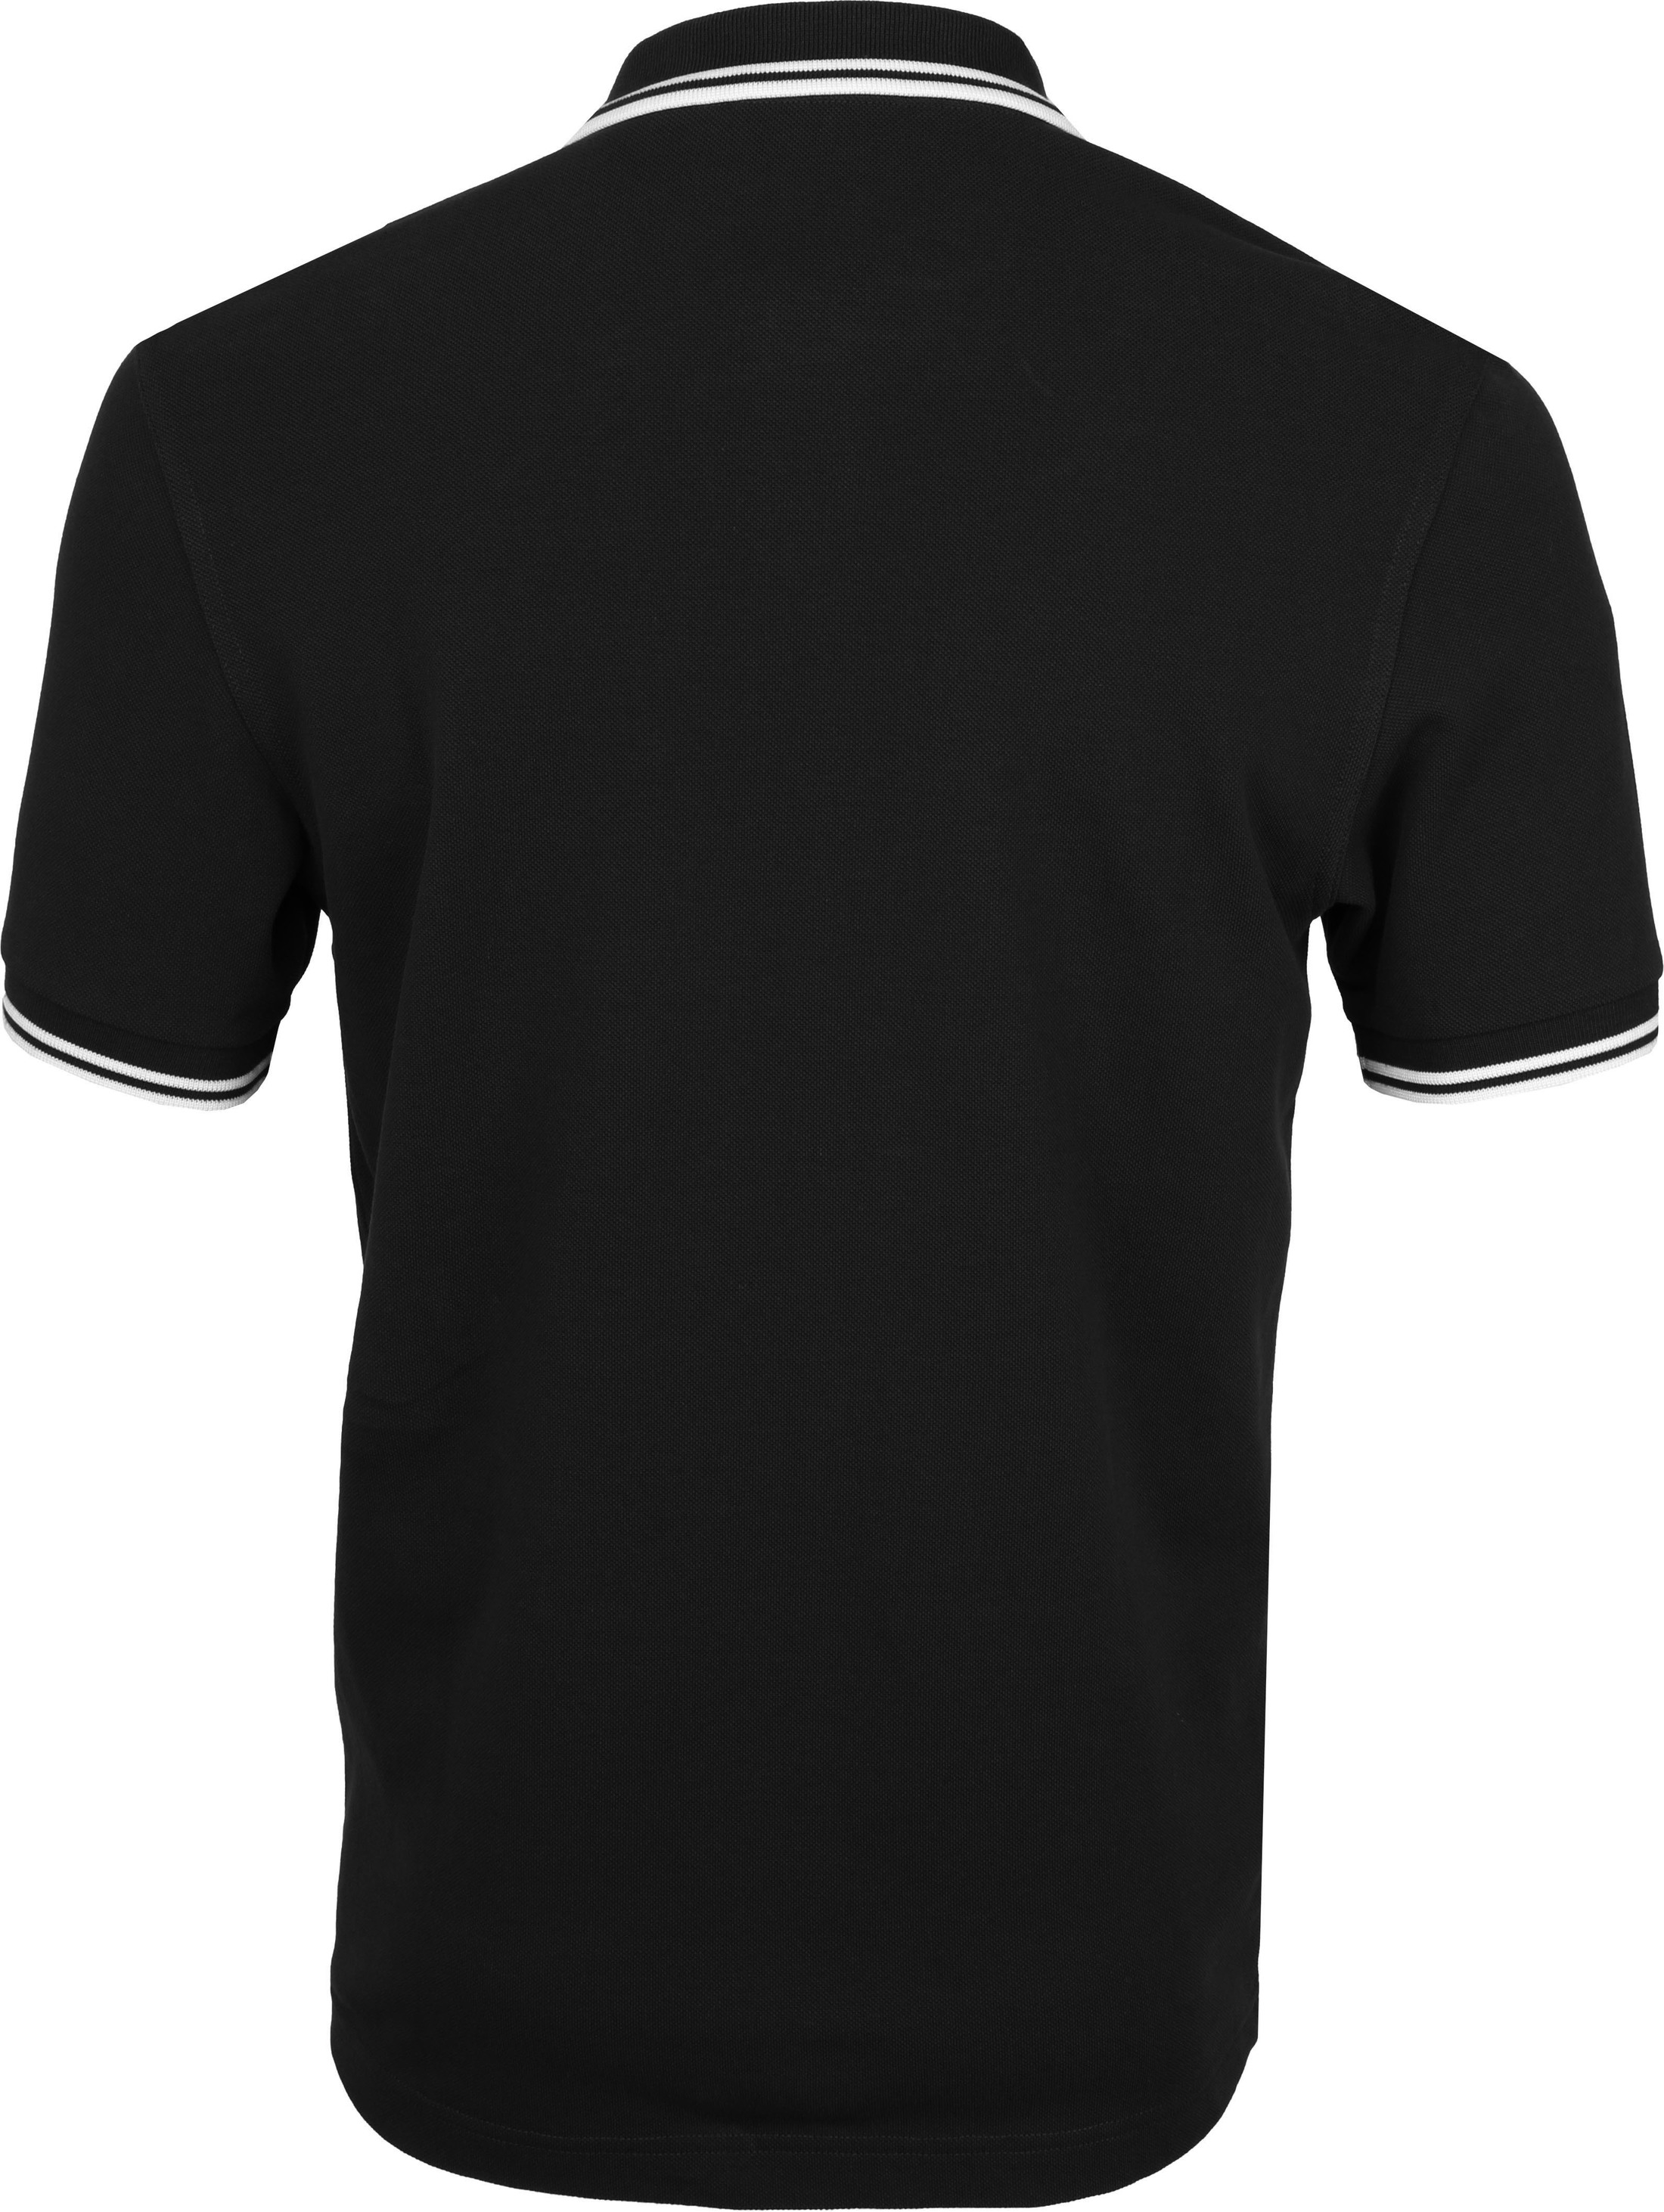 Fred Perry Polo Black 524 foto 2